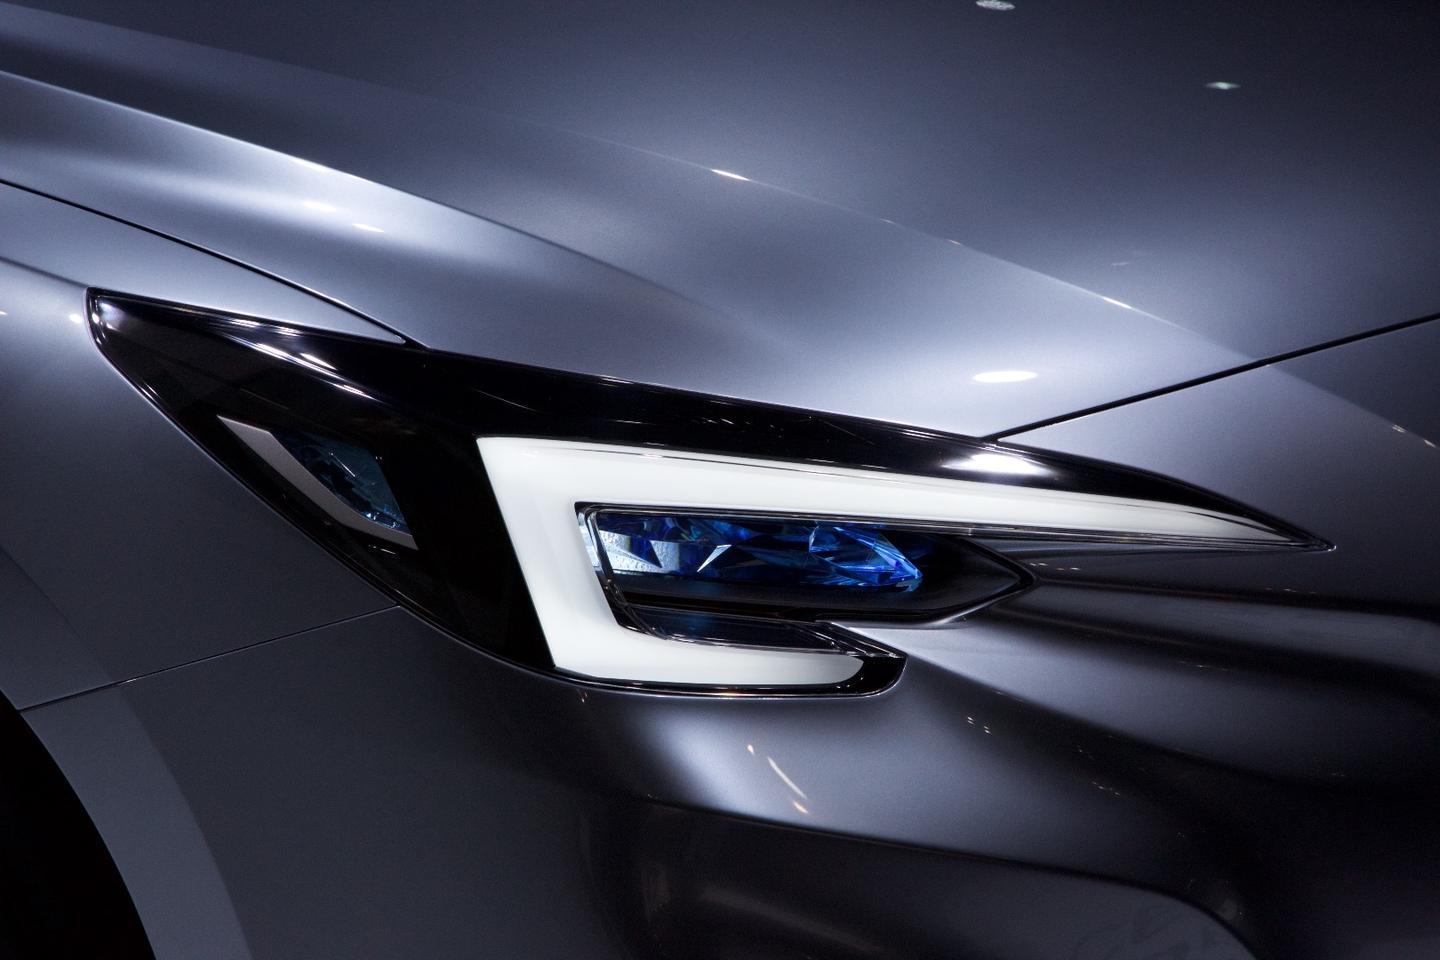 The Impreza 5-Door Concept has hawk-eye headlights